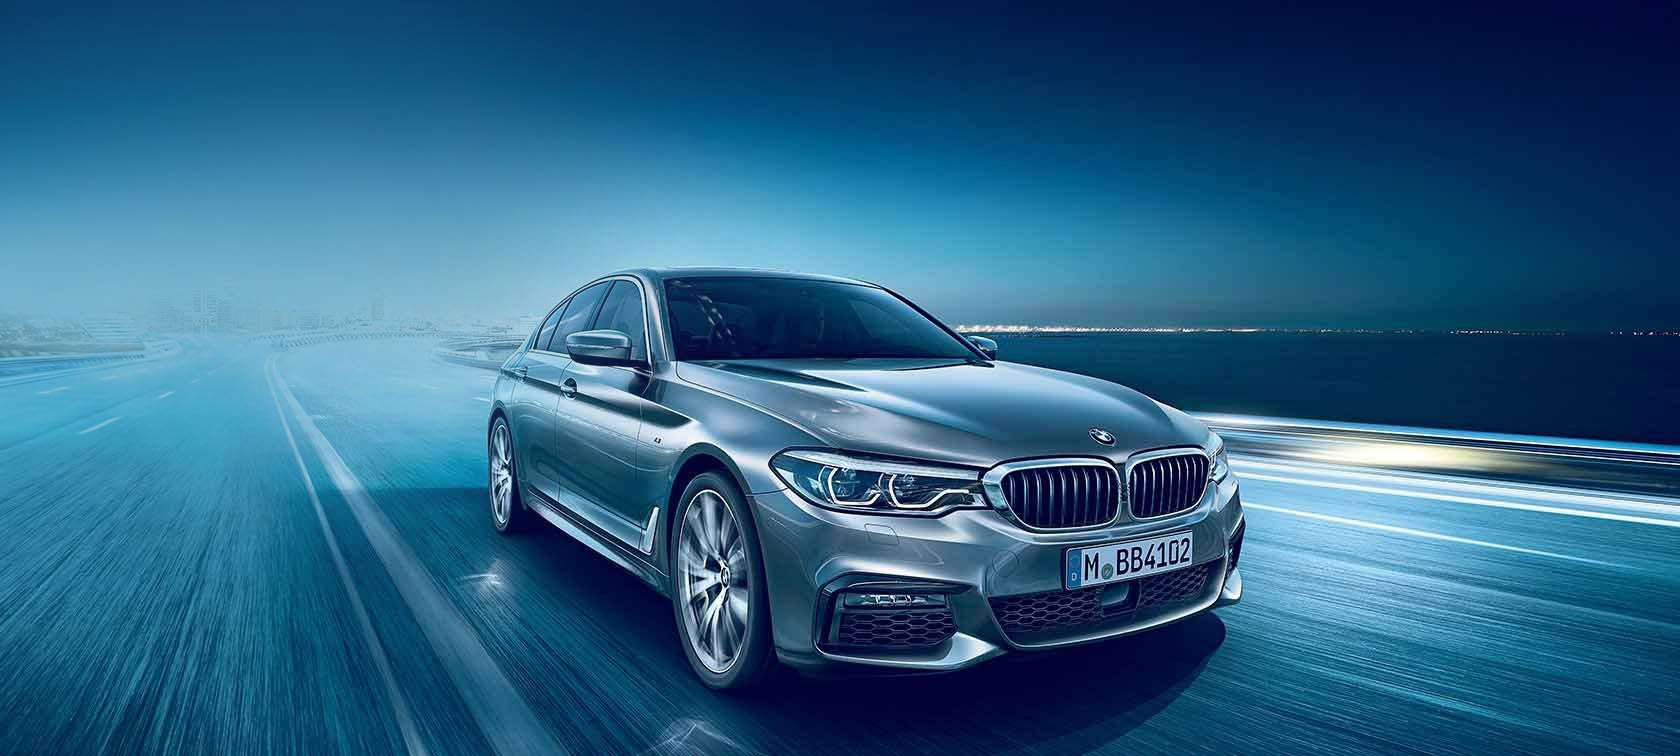 The Best Bmw Cars In The Market